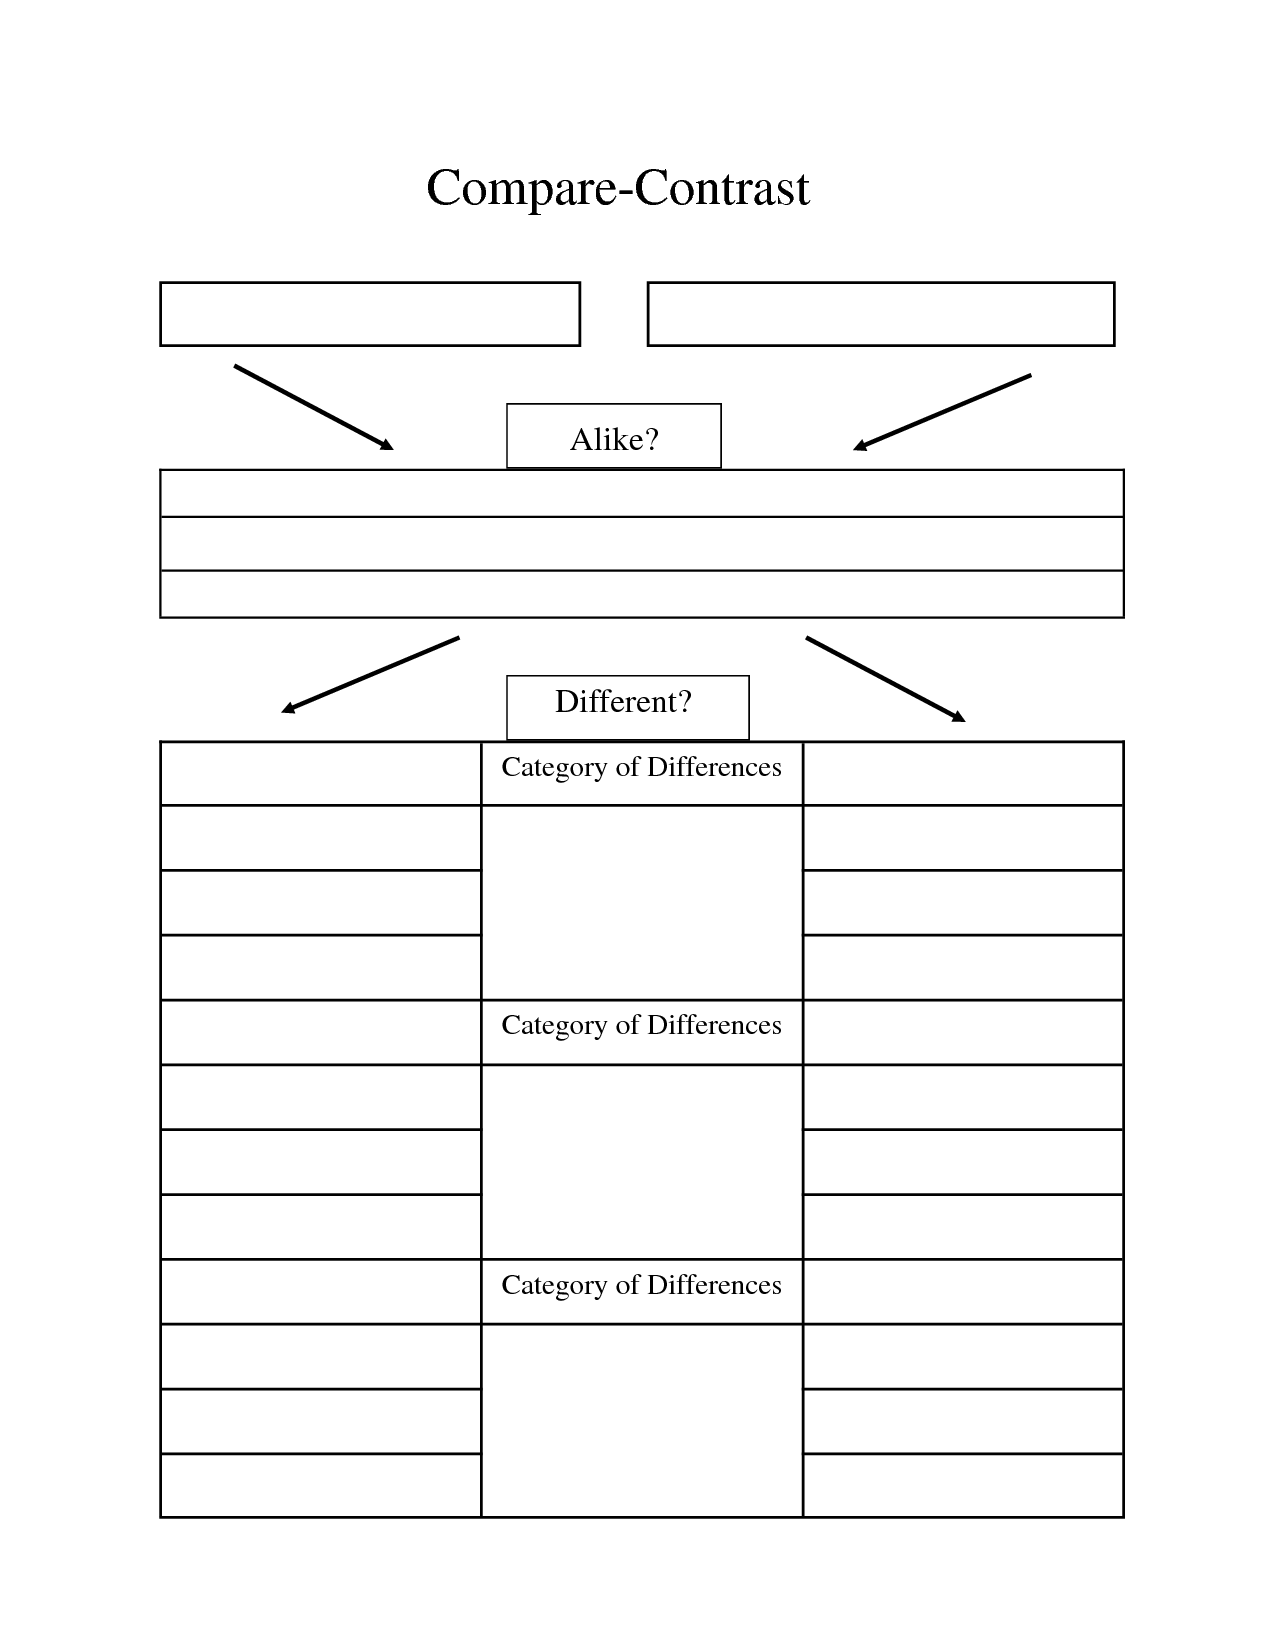 Compare Contrast Essay Graphic Organizer  Compare Contrast Alike  Compare Contrast Essay Graphic Organizer  Compare Contrast Alike Different  Category Of Differences Category Of